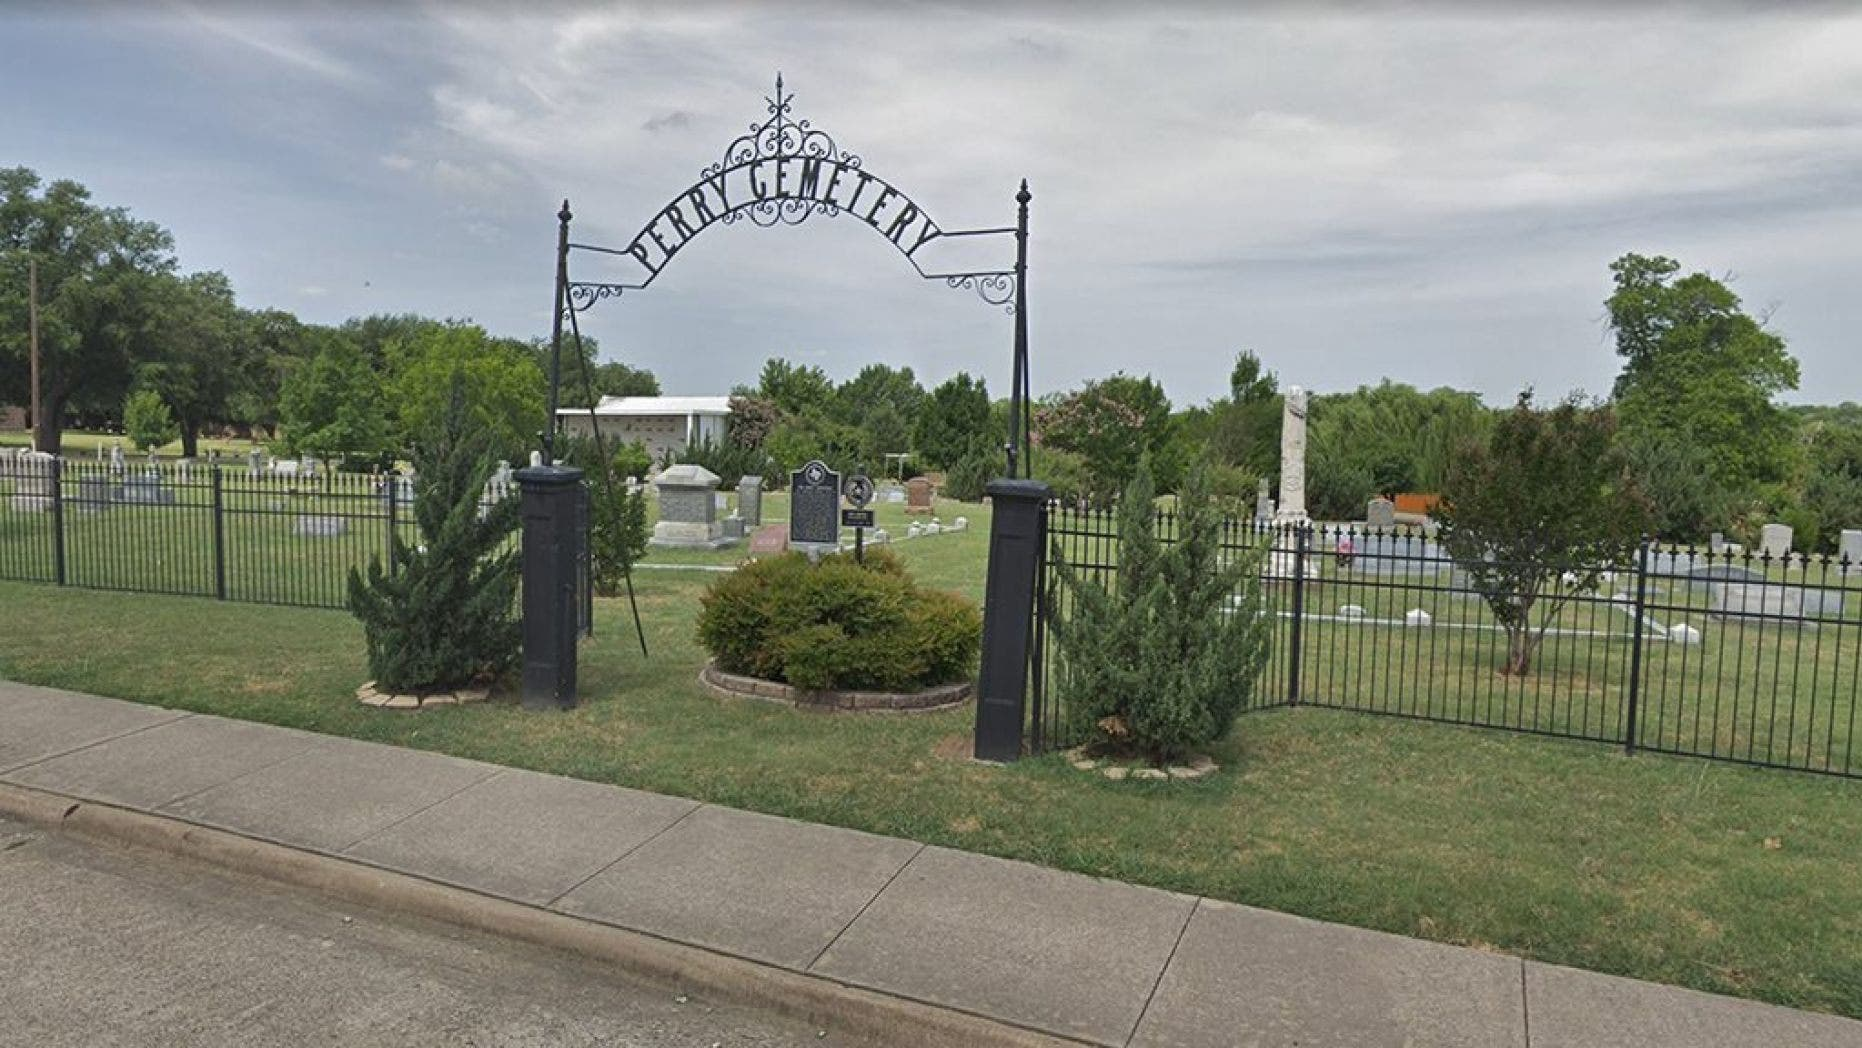 The mother of an infant who was found buried inside a flowerpot at a Texas cemetery last month has come forward to police, officials said.